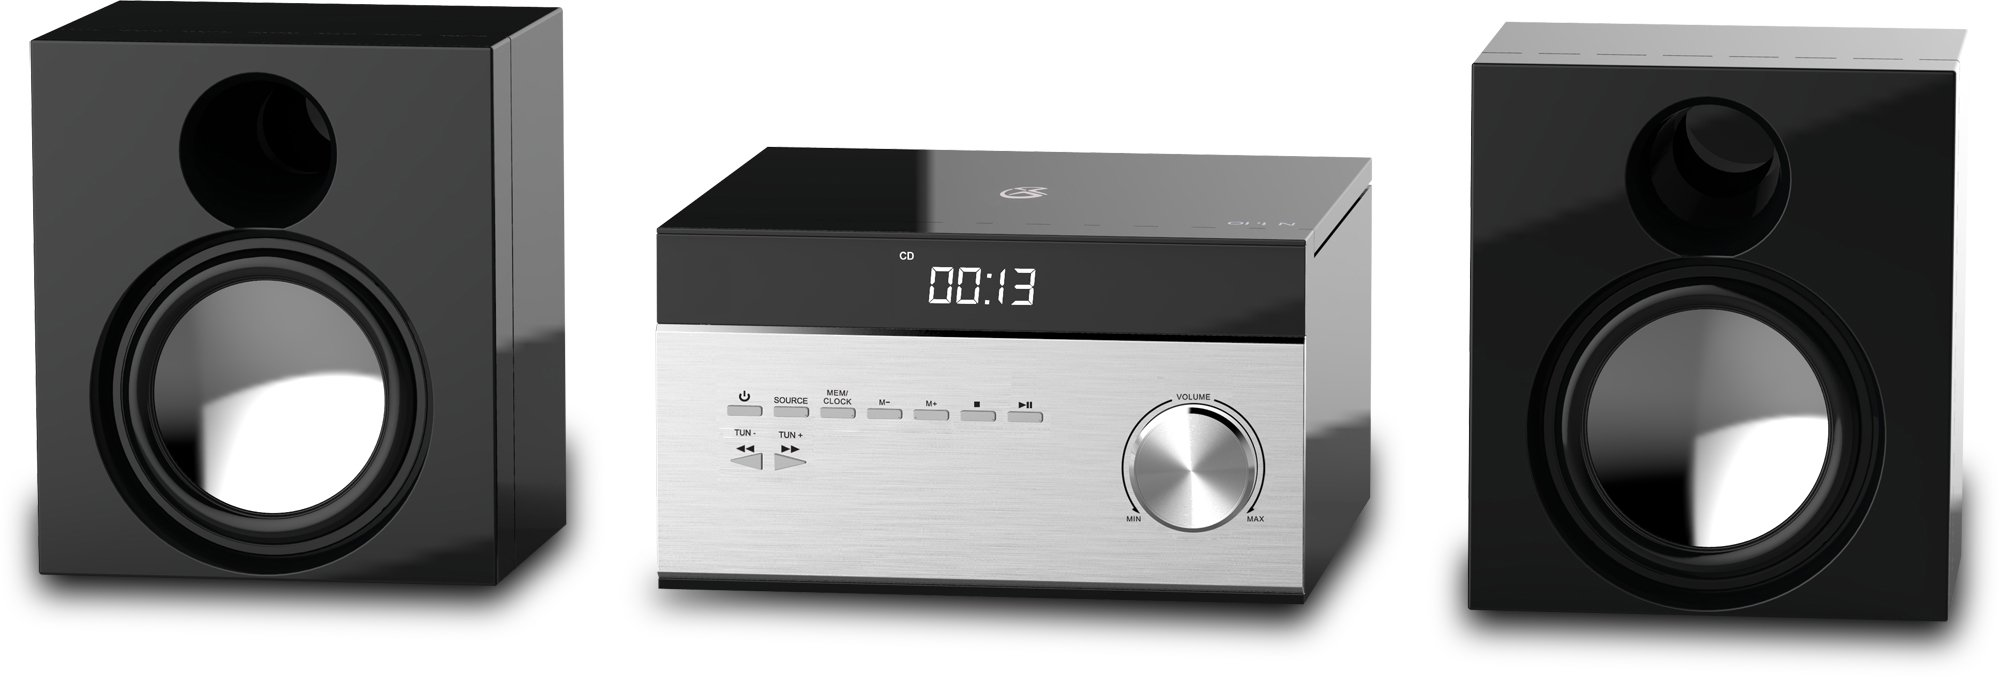 GPX HC225B Stereo System Control